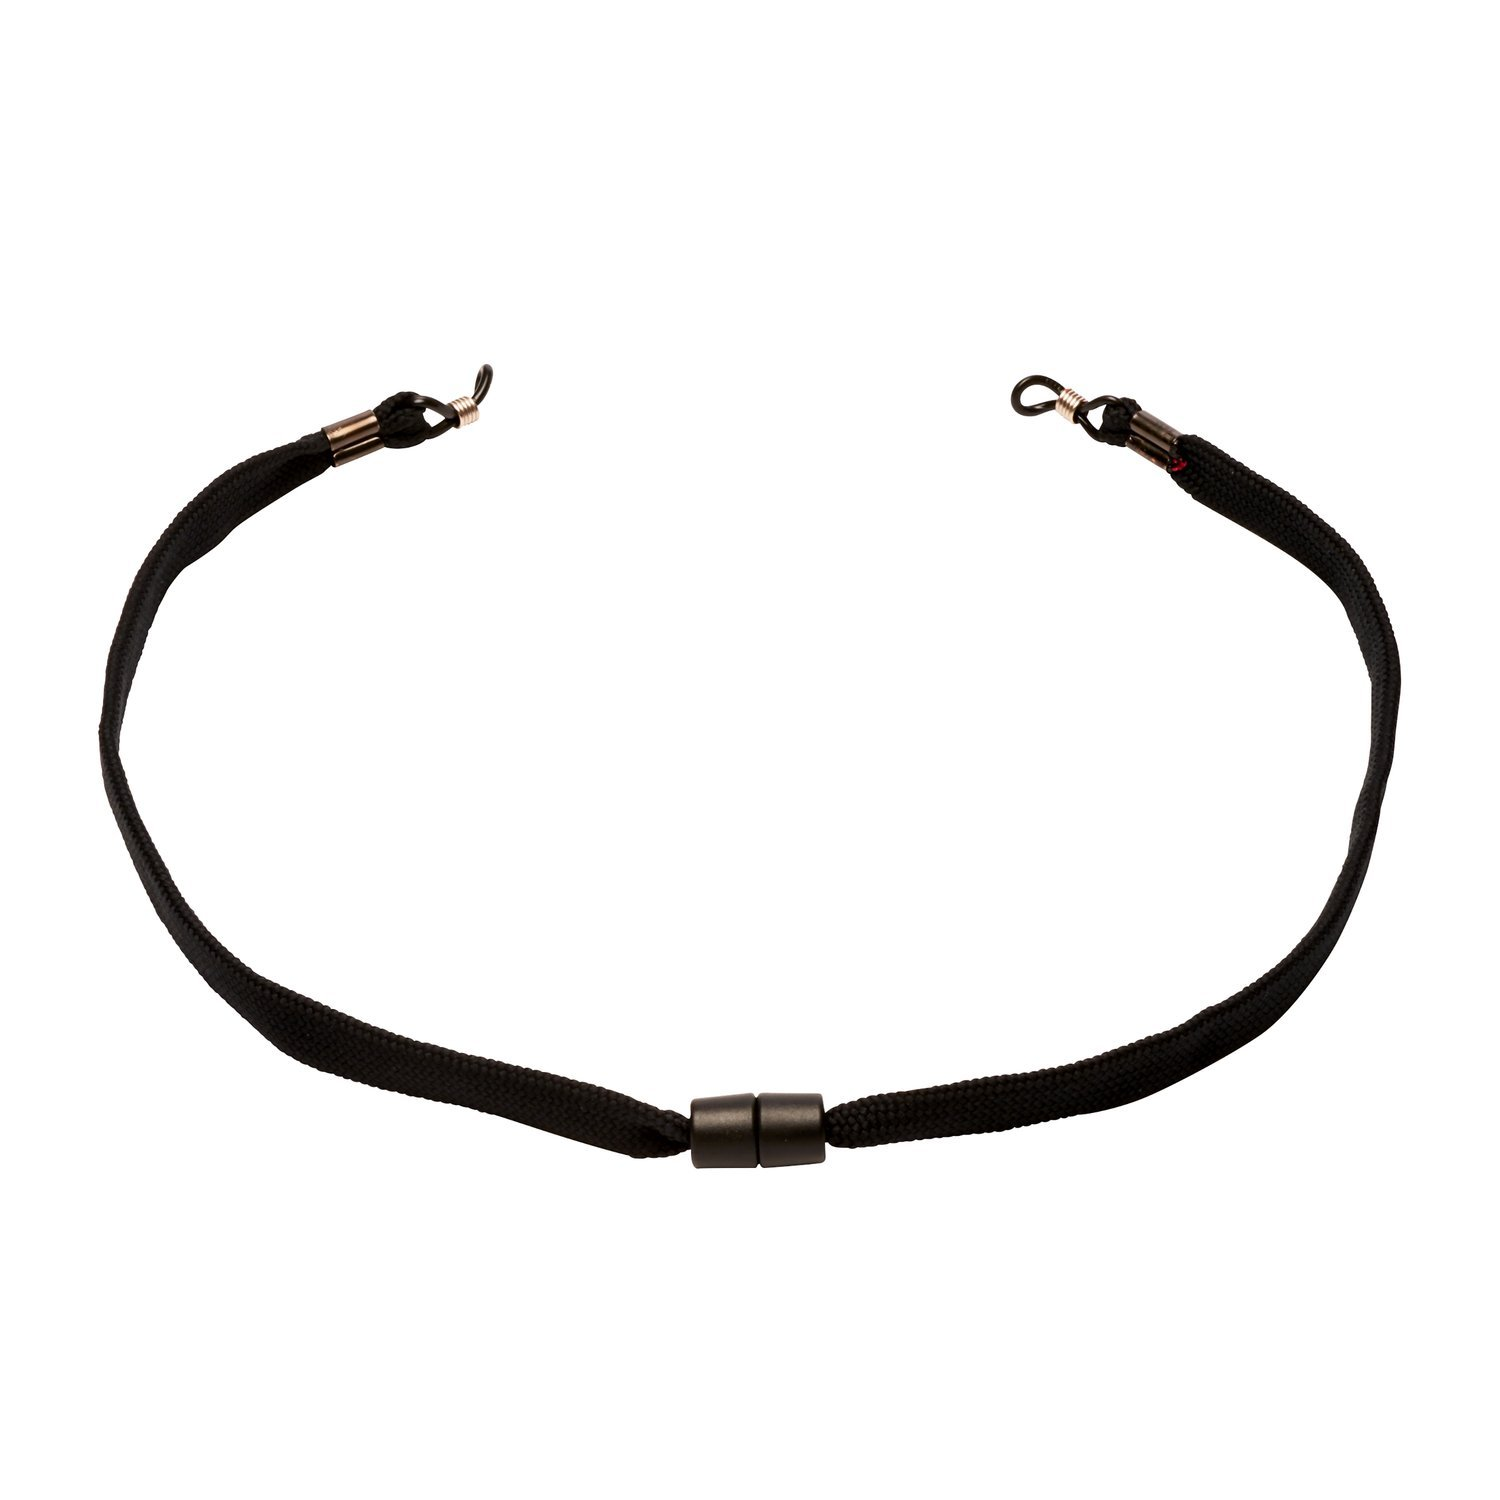 3M Safety Glasses Neck Cord with Safety Break 272